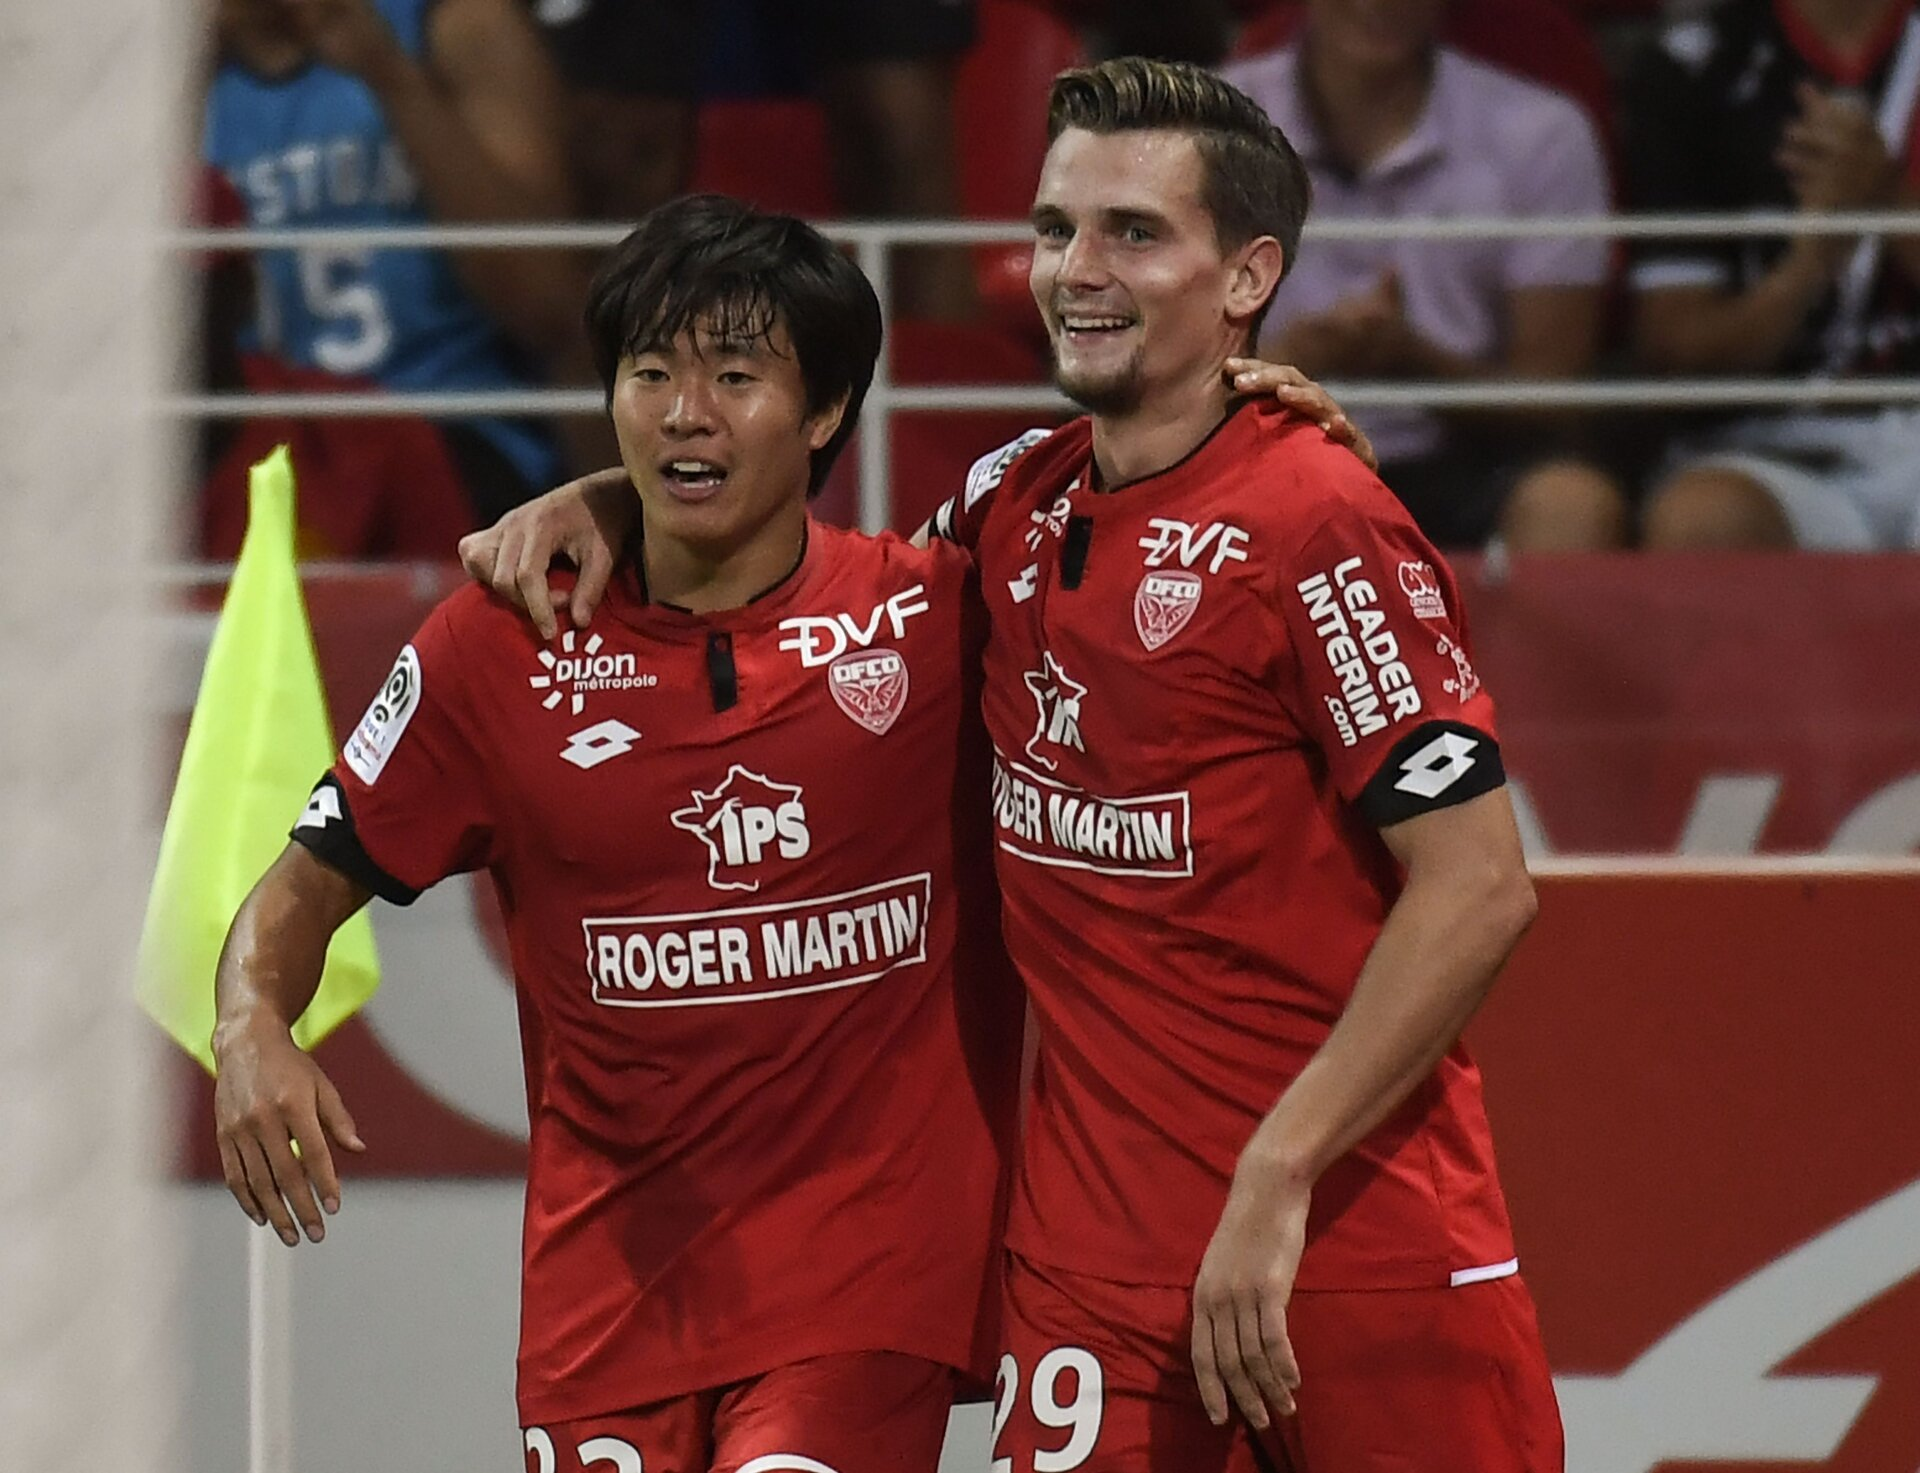 Dijon's French forward Benjamin Jeannot celebrates with his teammate Dijon's South-Korean midfielder Chang Hoon Kwon (L) after scoring a goal during the L1 football match Dijon FCO against Montpellier HSC at The Gaston Gerard Stadium in Dijon, eastern France on August 26, 2017. / AFP PHOTO / PHILIPPE DESMAZES        (Photo credit should read PHILIPPE DESMAZES/AFP/Getty Images)